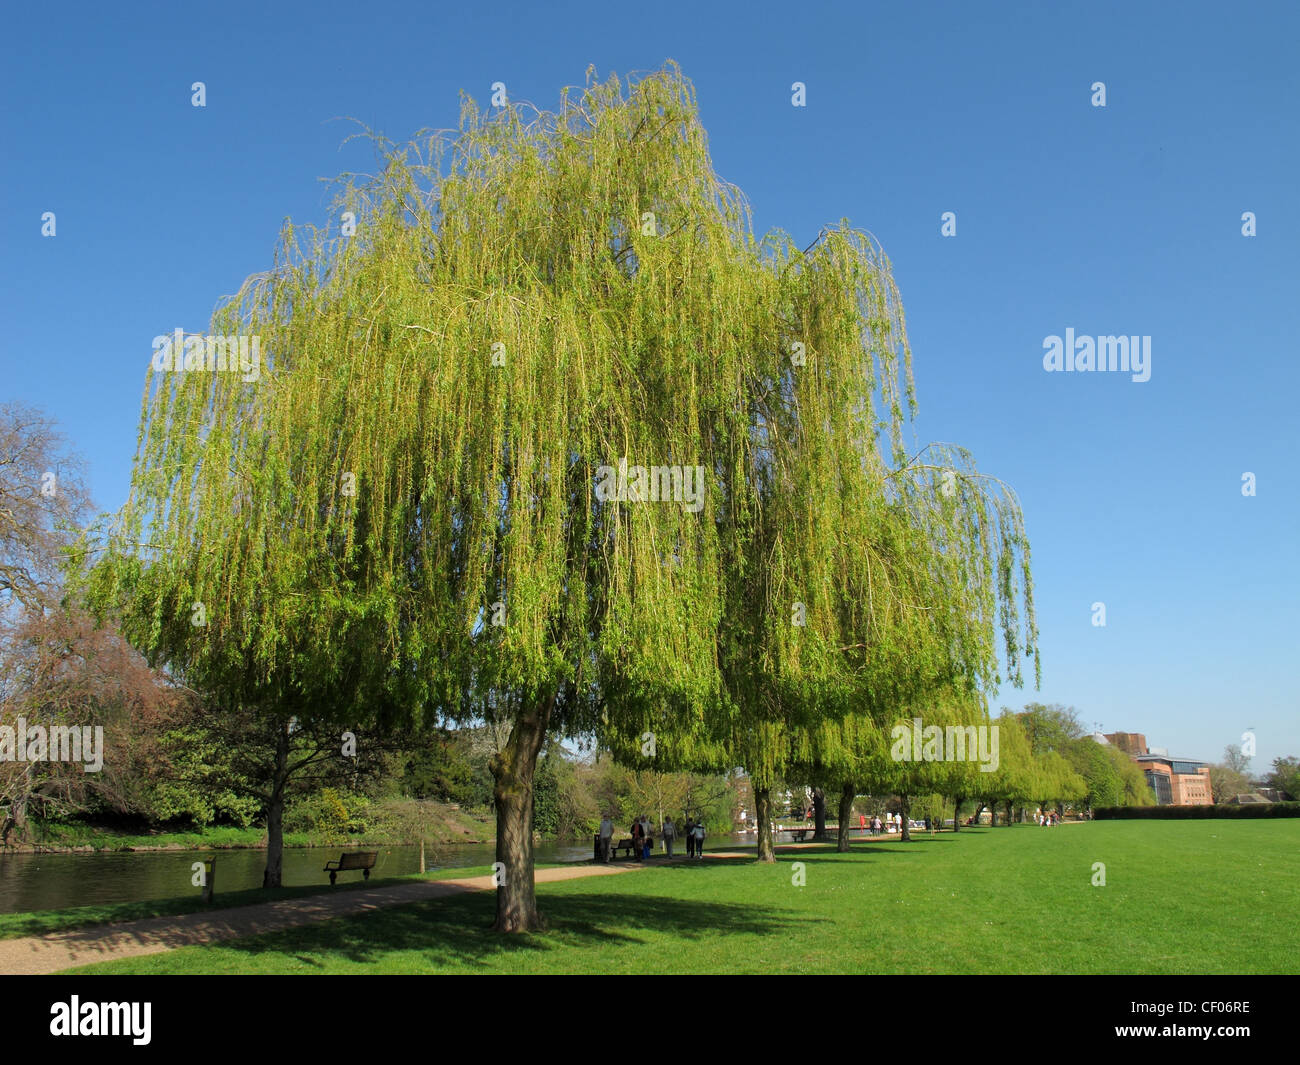 Clipped willows alongside the River Avon at Stratford, WArwickshire - Stock Image